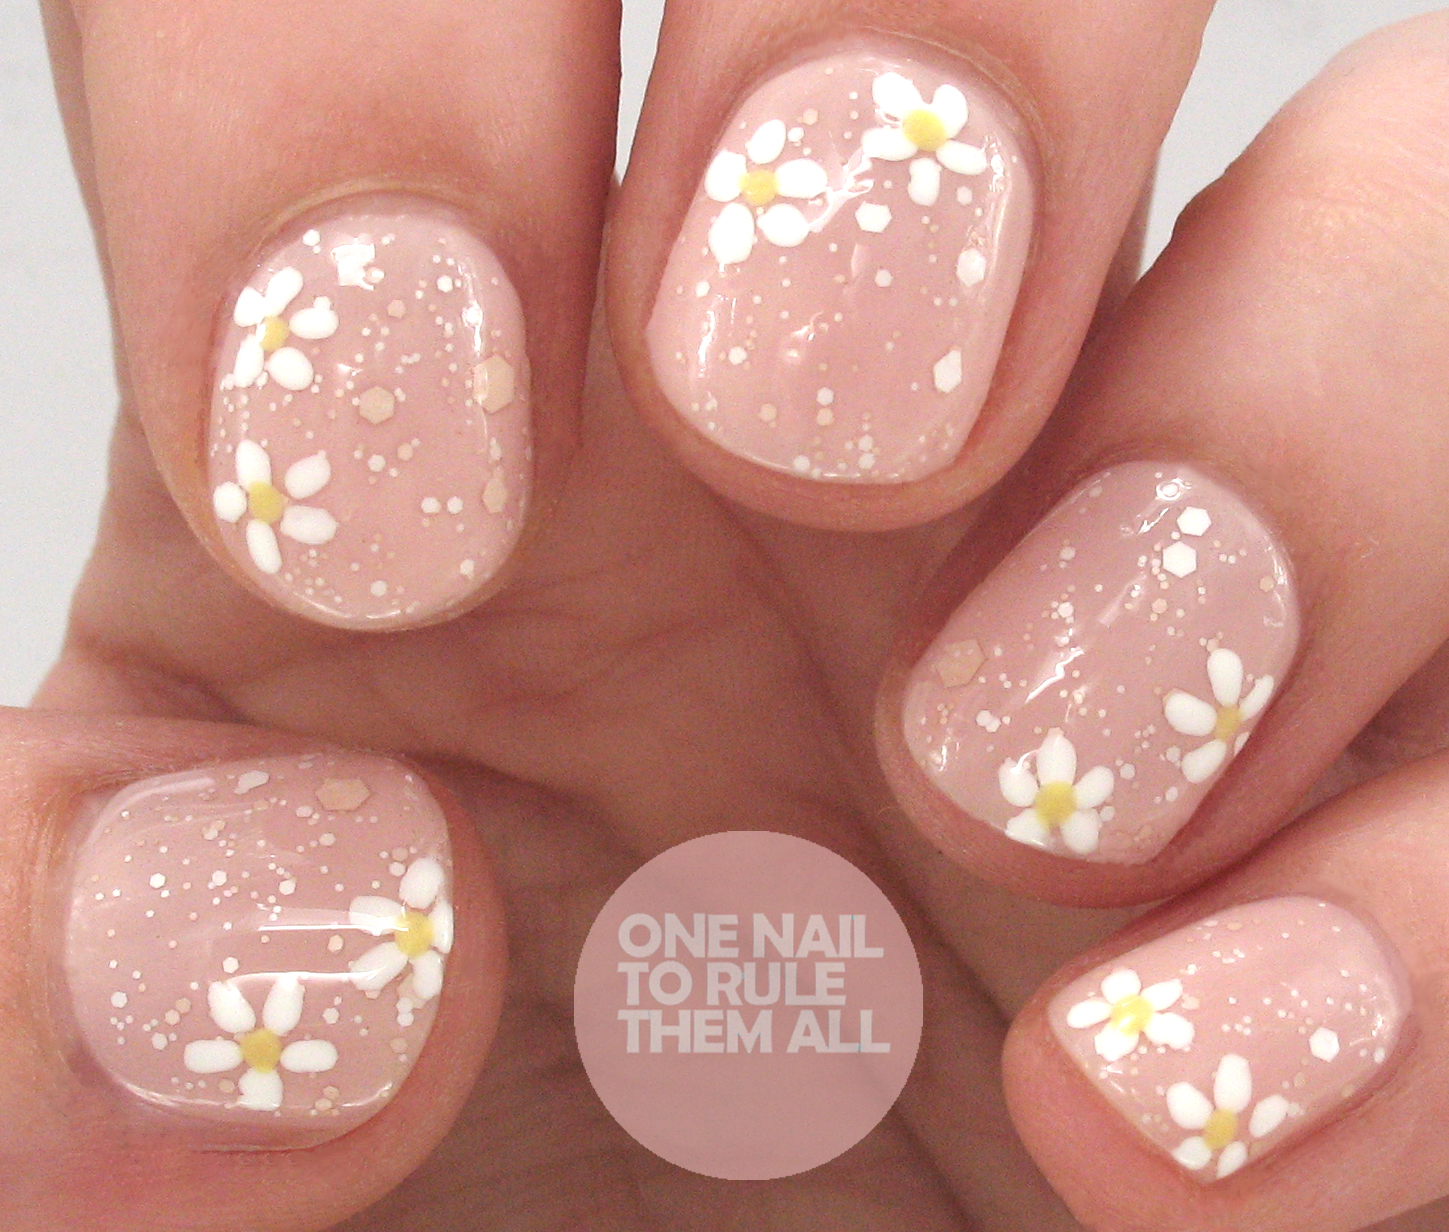 OPI Nail Envy Strength & Colour - Bubble Bath Daisies | One Nail To ...